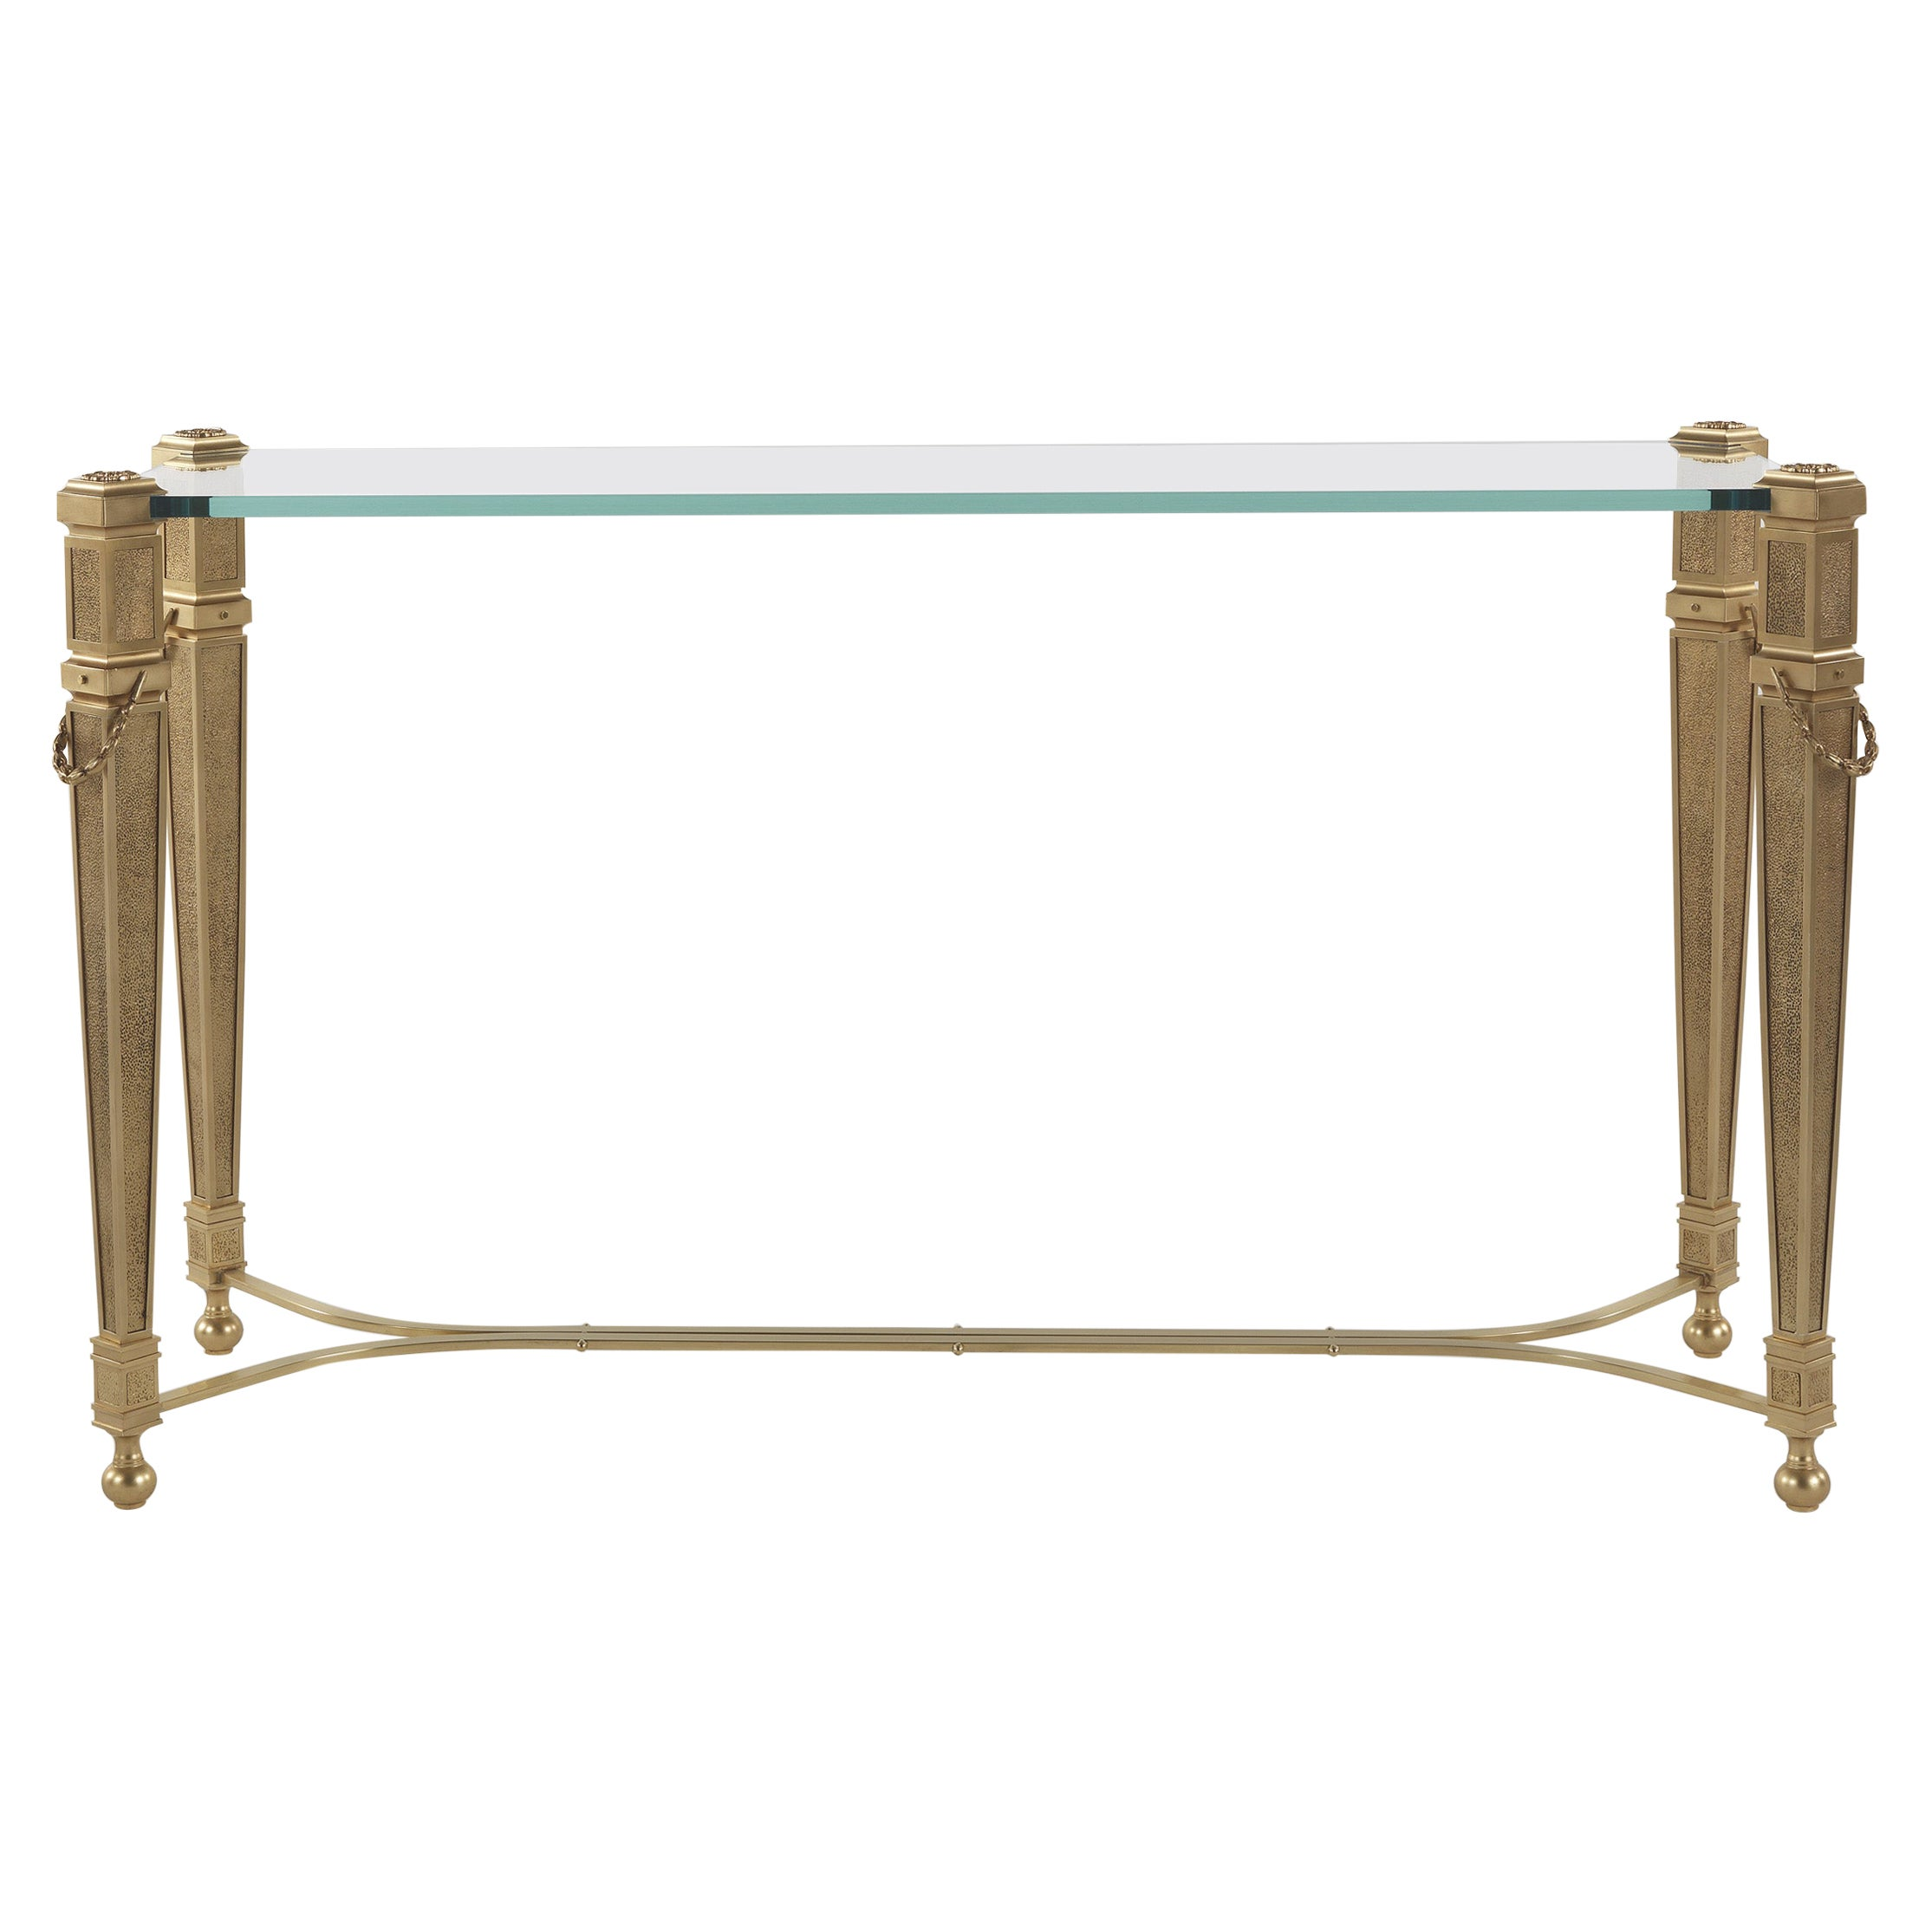 Jumbo Collection Giove Console Table in Brass and Glass